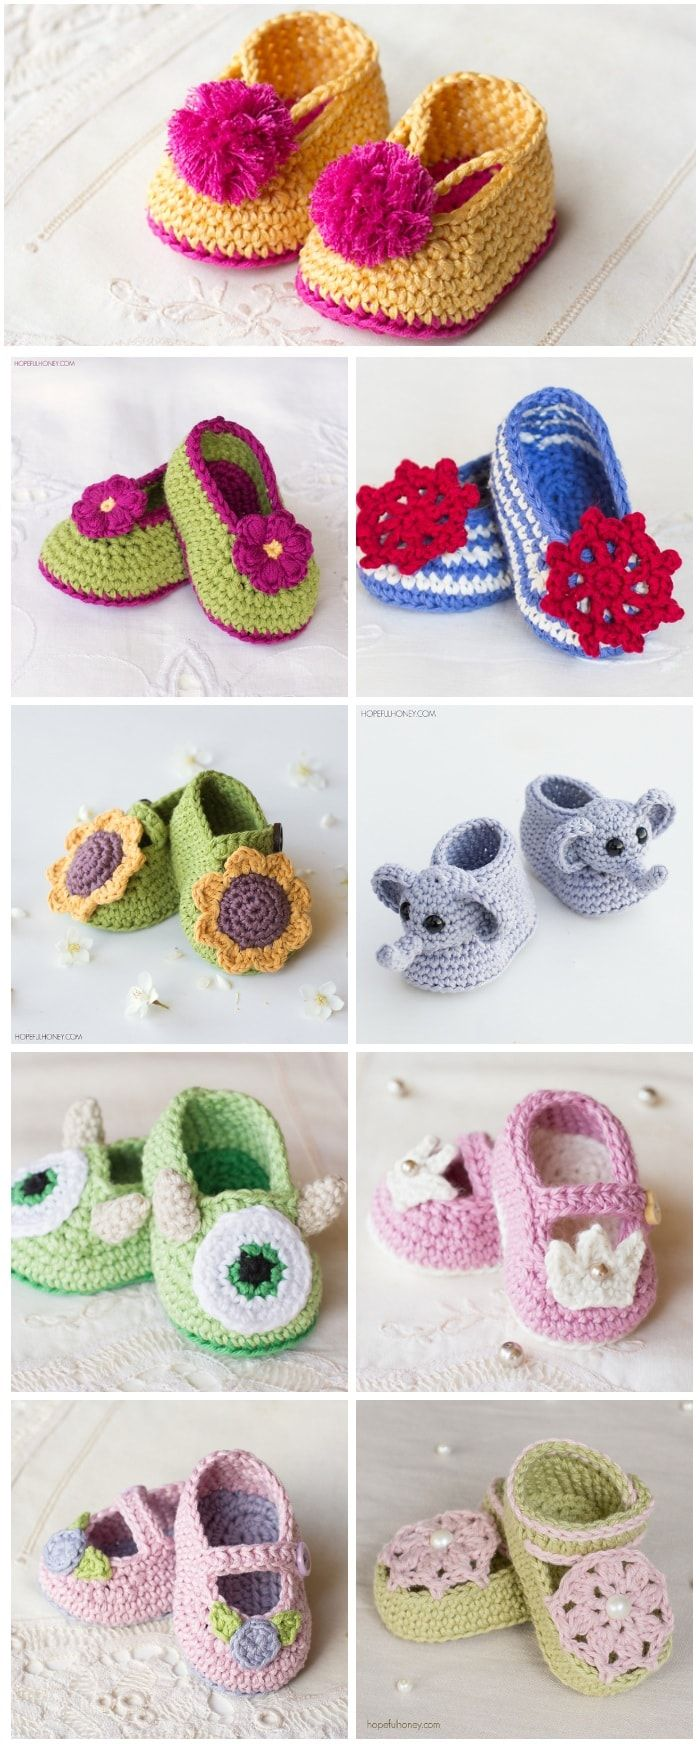 25 Adorable Free Crochet Baby Booties | BABY CROCHET | Pinterest ...